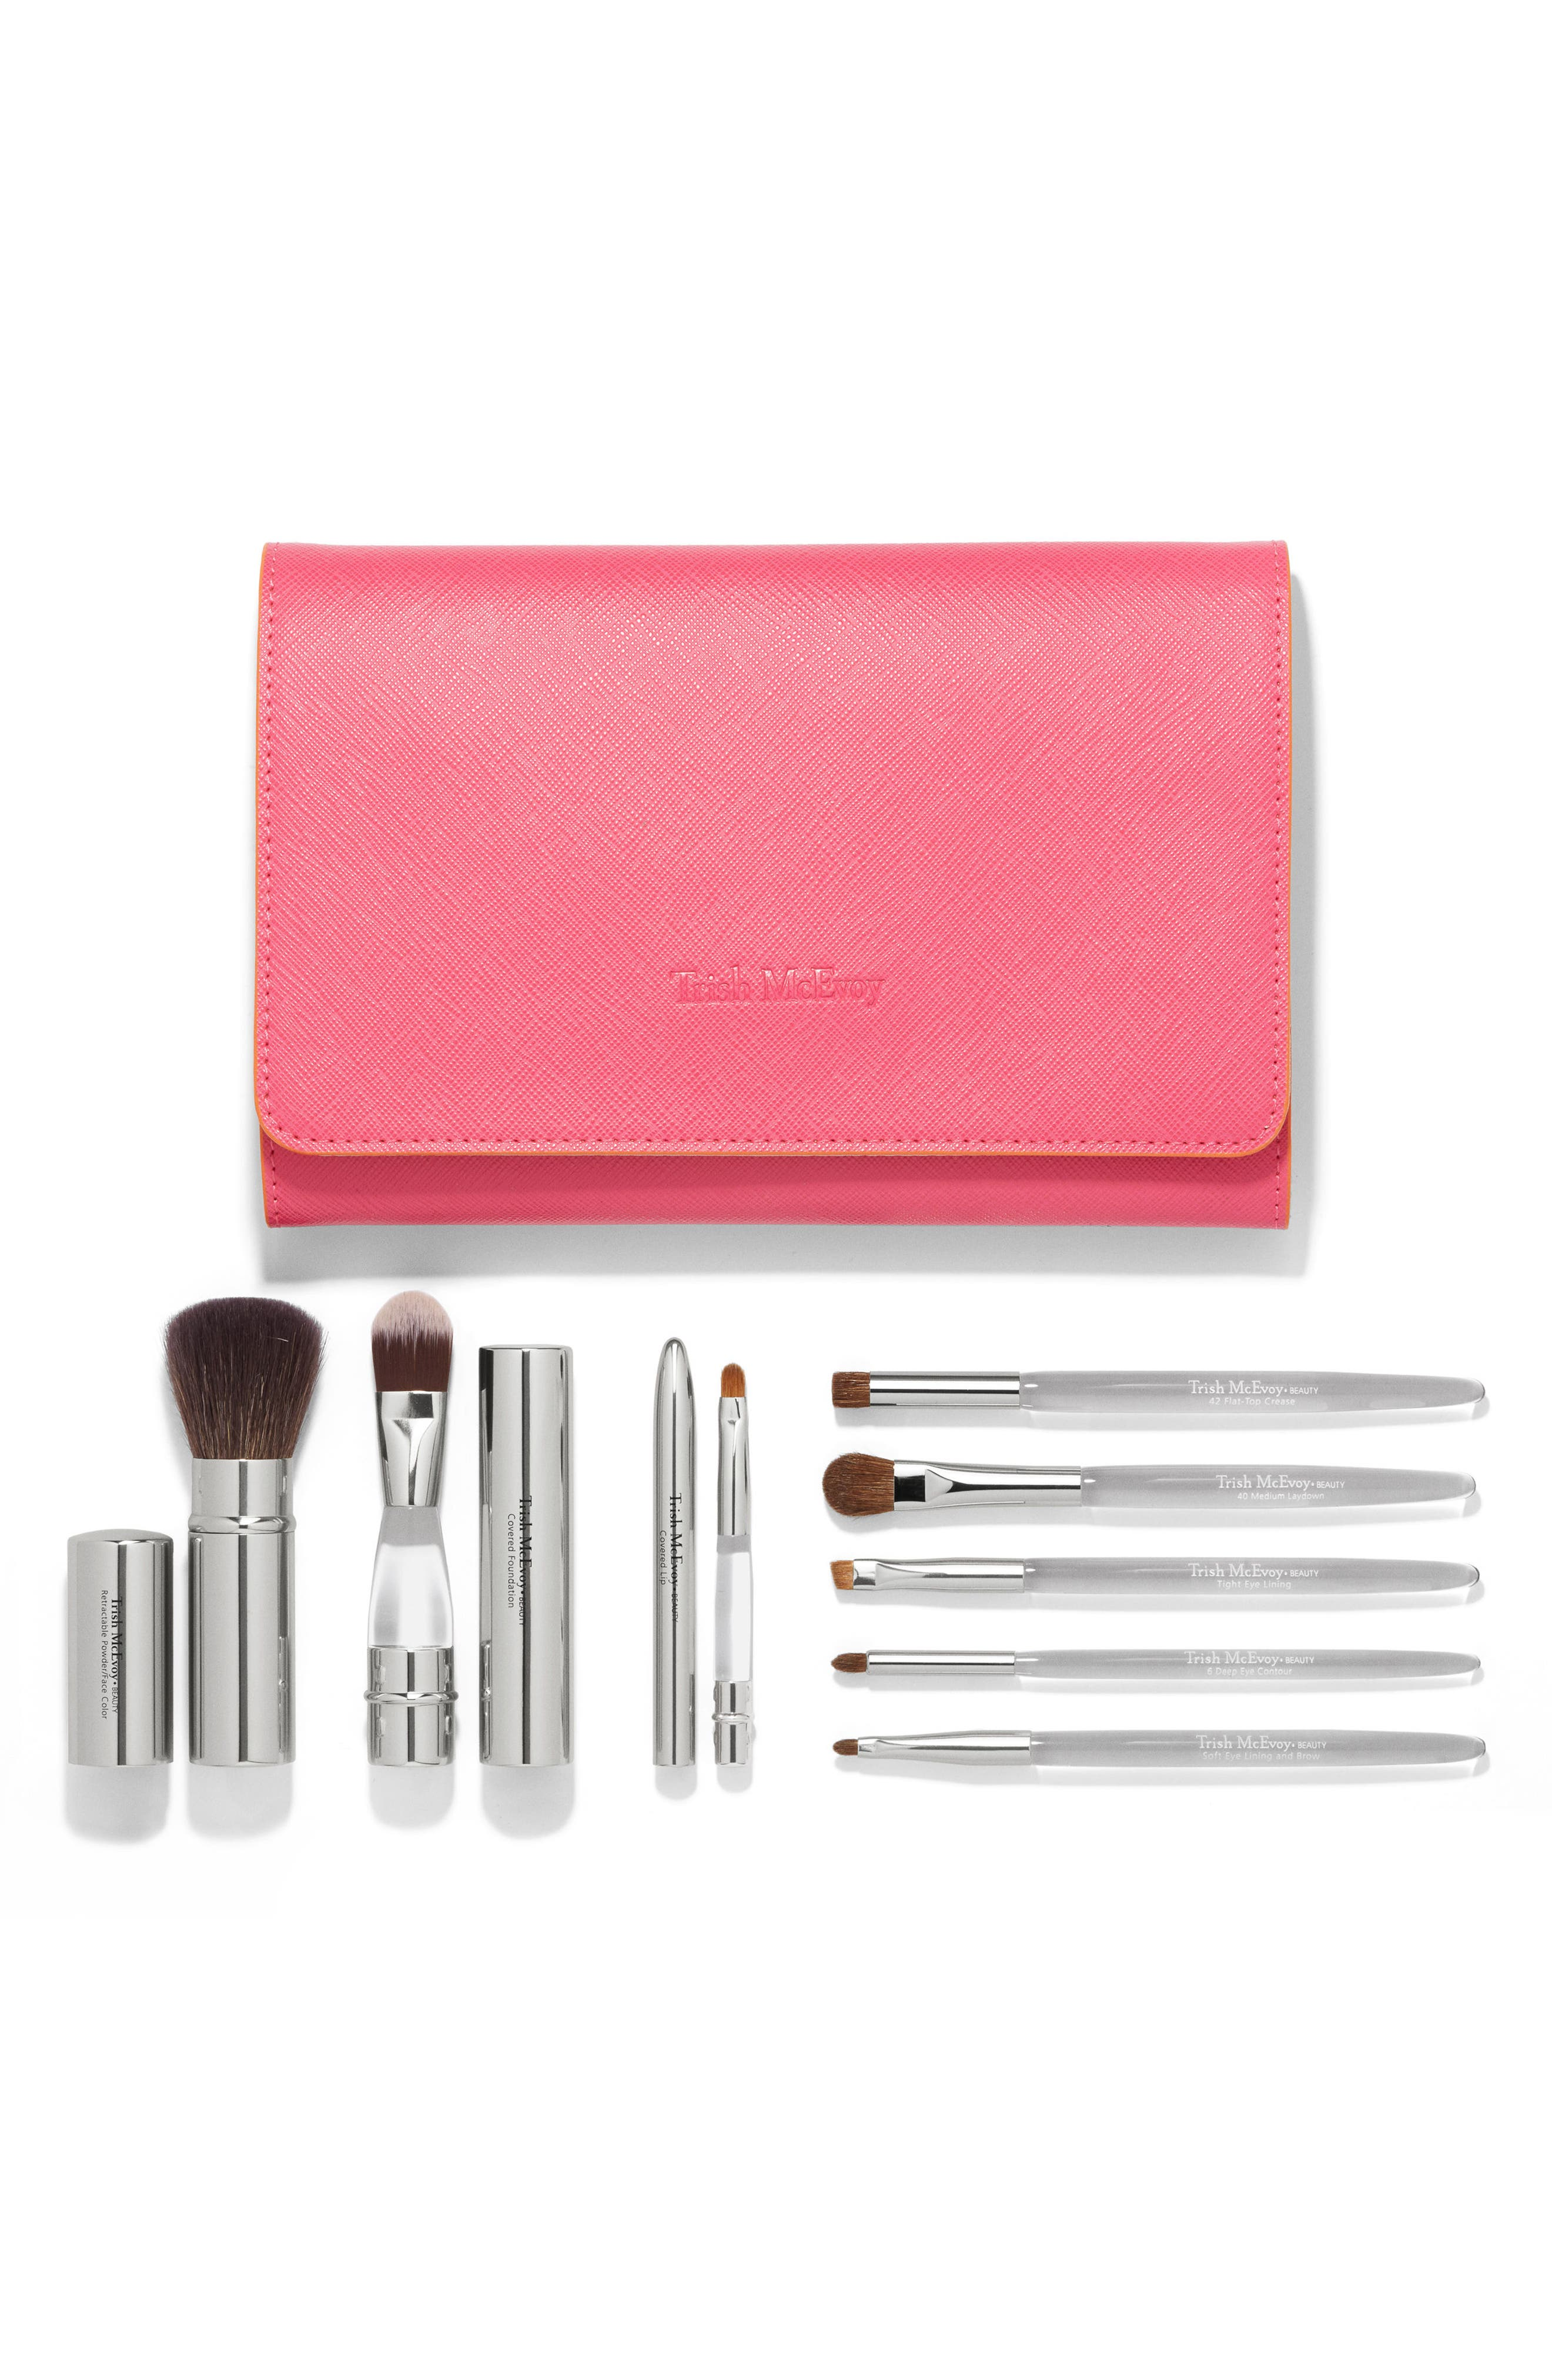 Trish McEvoy The Power of Brushes® Confident Collection ($402.50 Value)